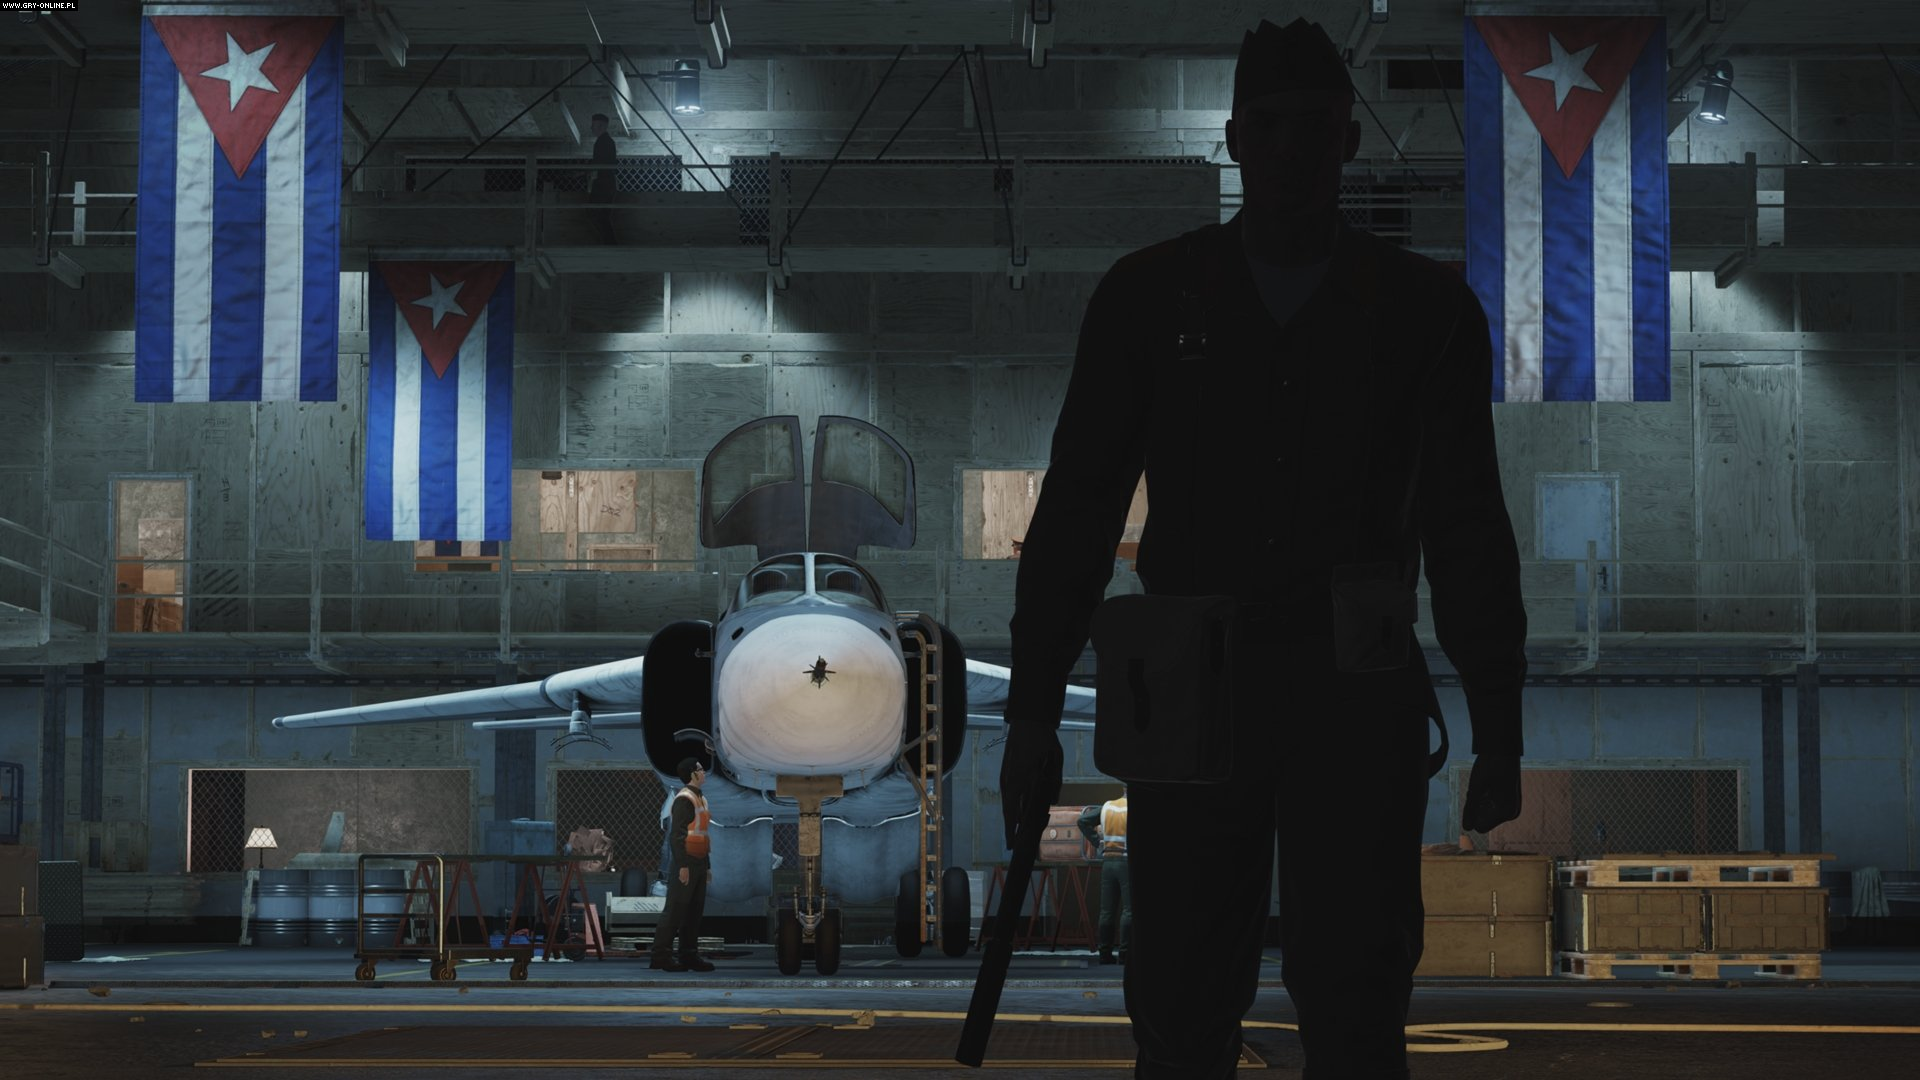 Hitman PC, PS4, XONE Games Image 11/21, Io-Interactive, Square-Enix / Eidos